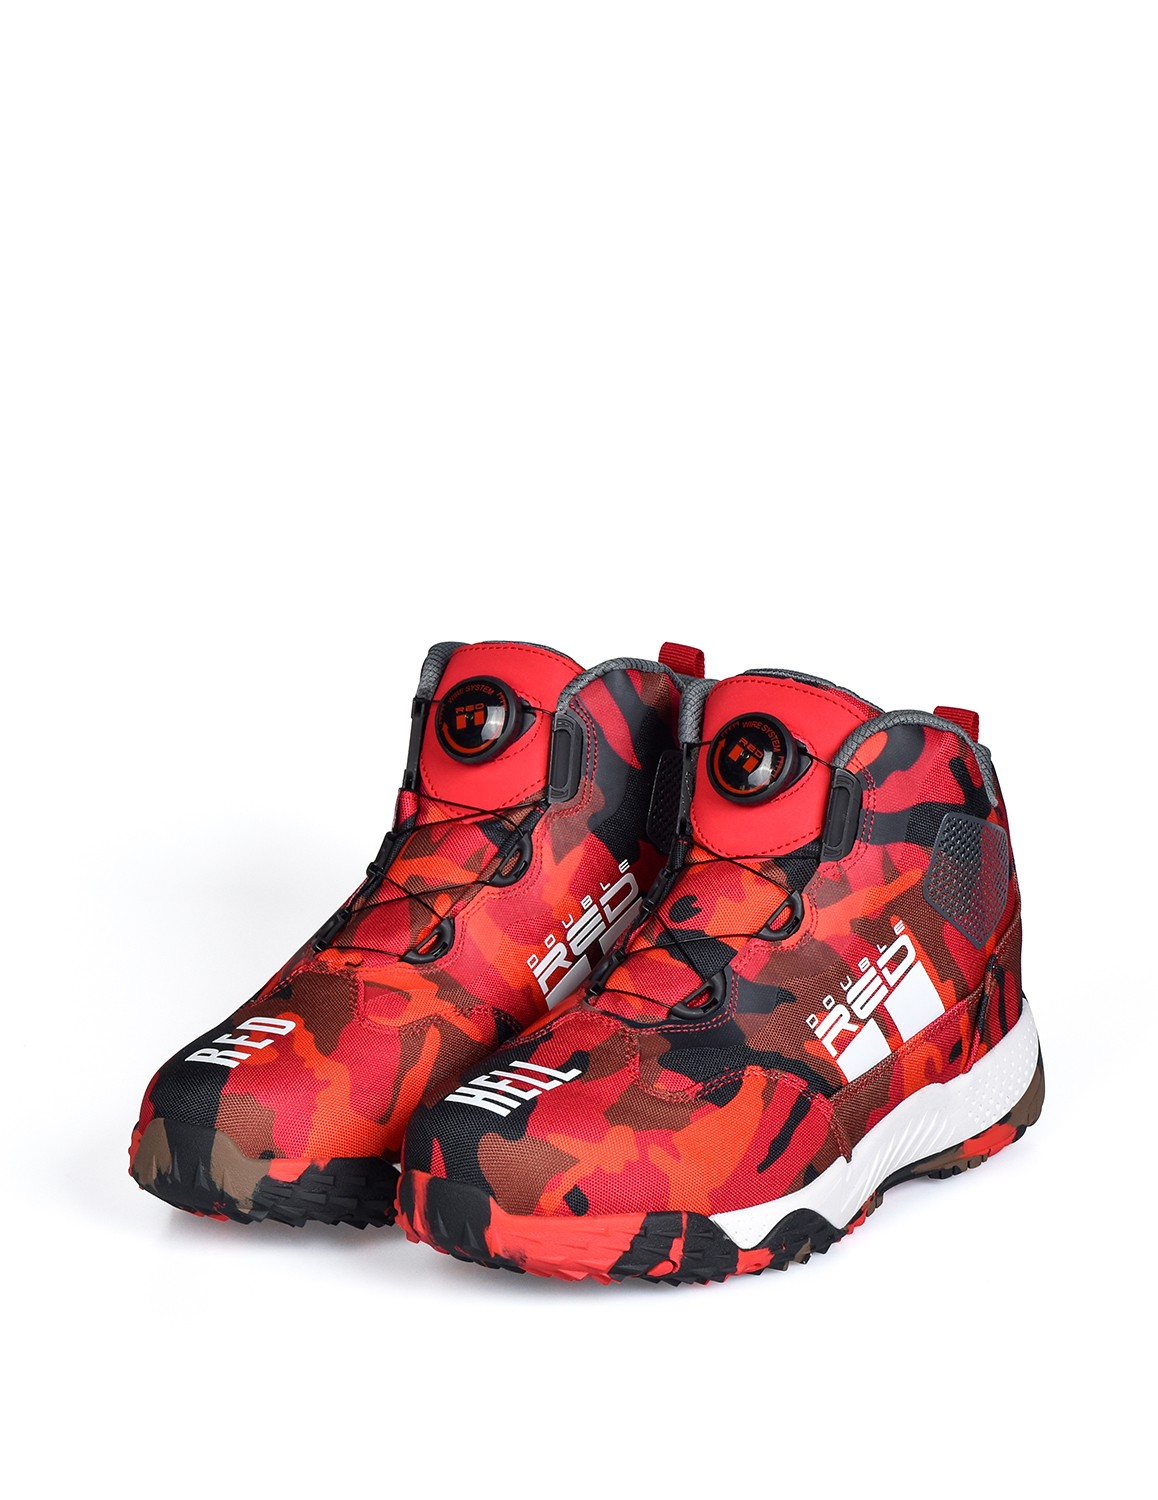 Boots WIRE Red Hell